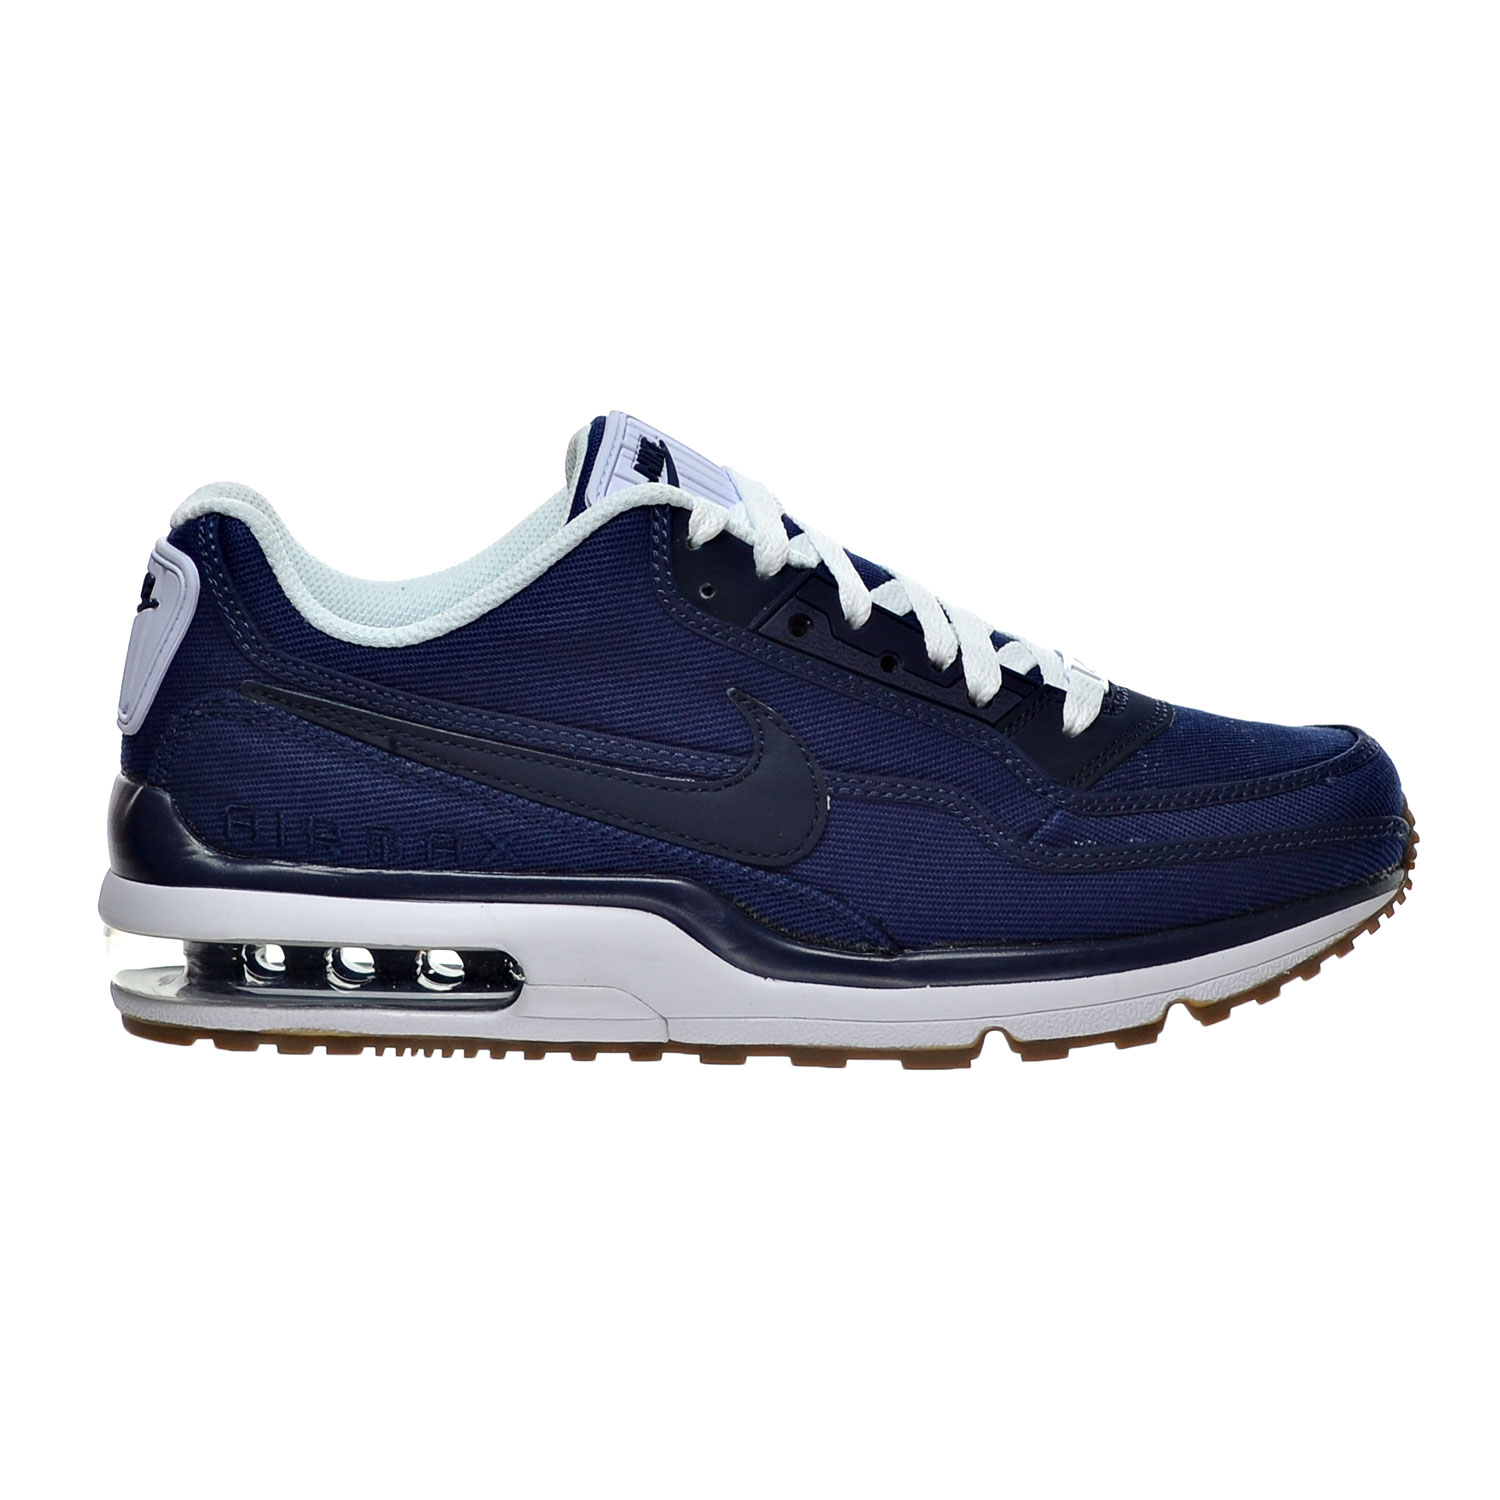 6206f8e89b Details about Nike Air Max LTD 3 TXT Men's Shoes Midnight Navy/Obsidian/White/Brown  746379-412